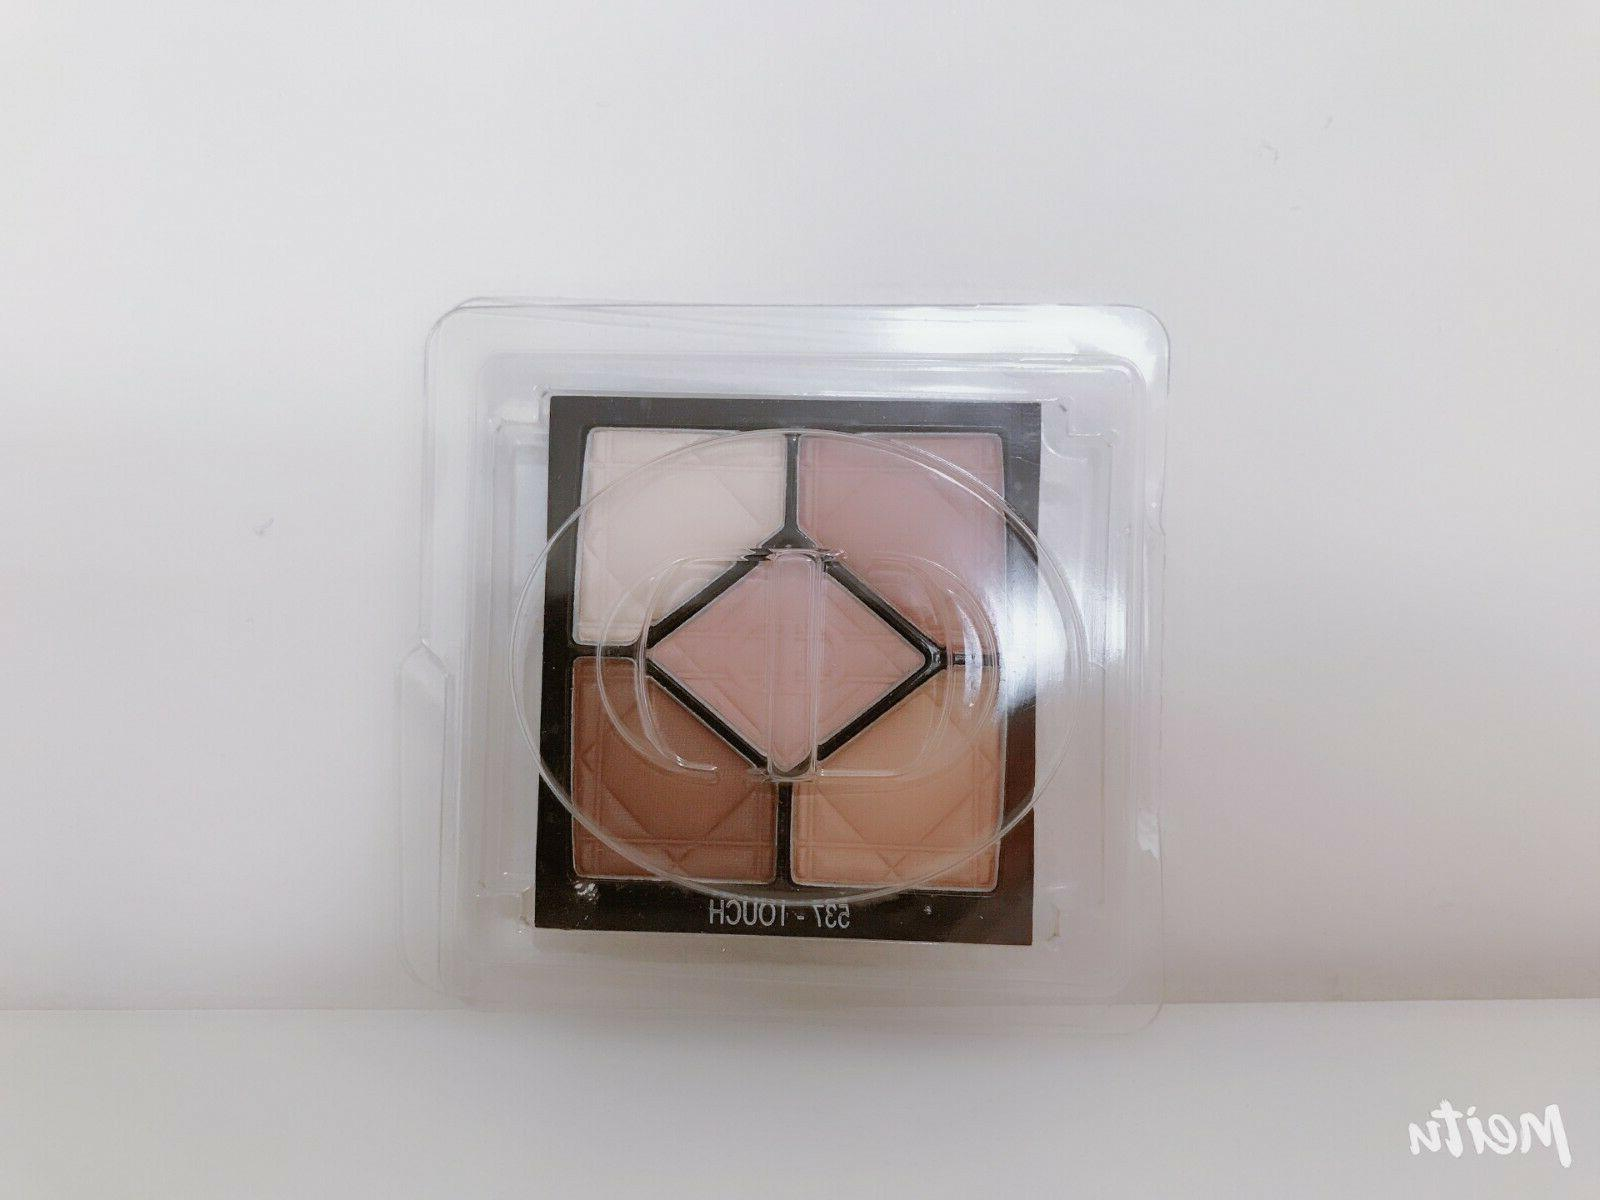 Dior 5 couleurs palette New In Case Authentic!